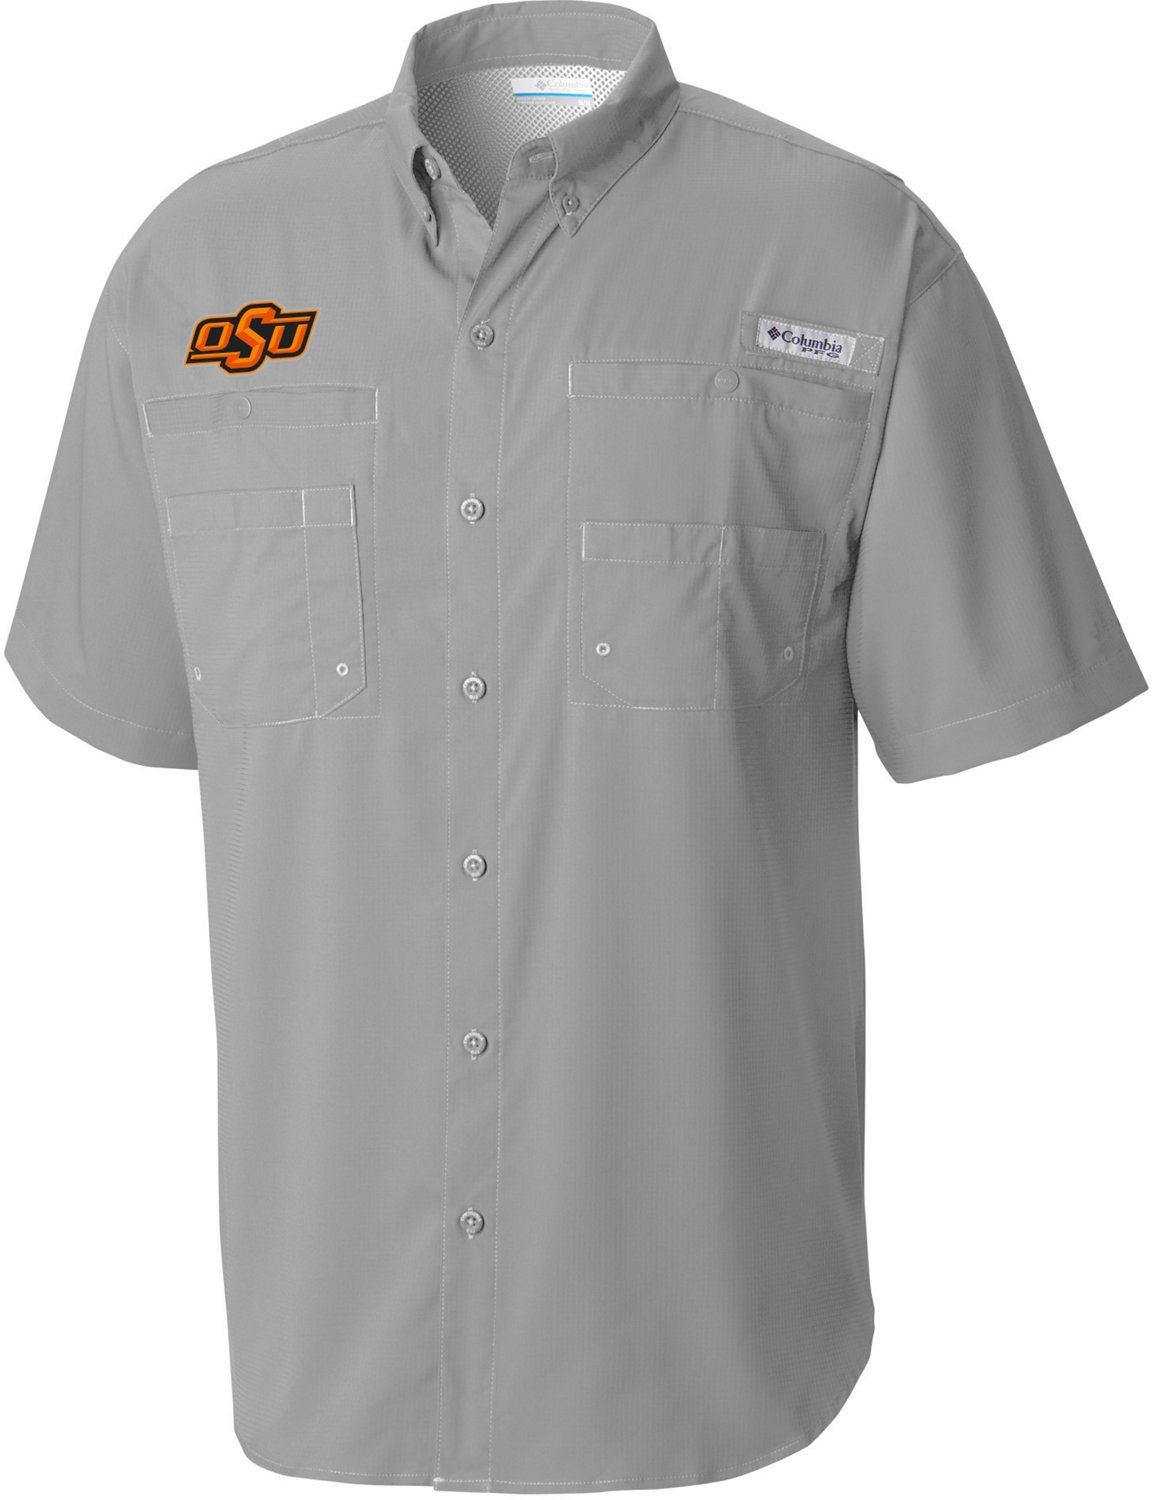 c5a1d20abdf39 Display product reviews for Columbia Sportswear Men s Oklahoma State  University Tamiami Shirt